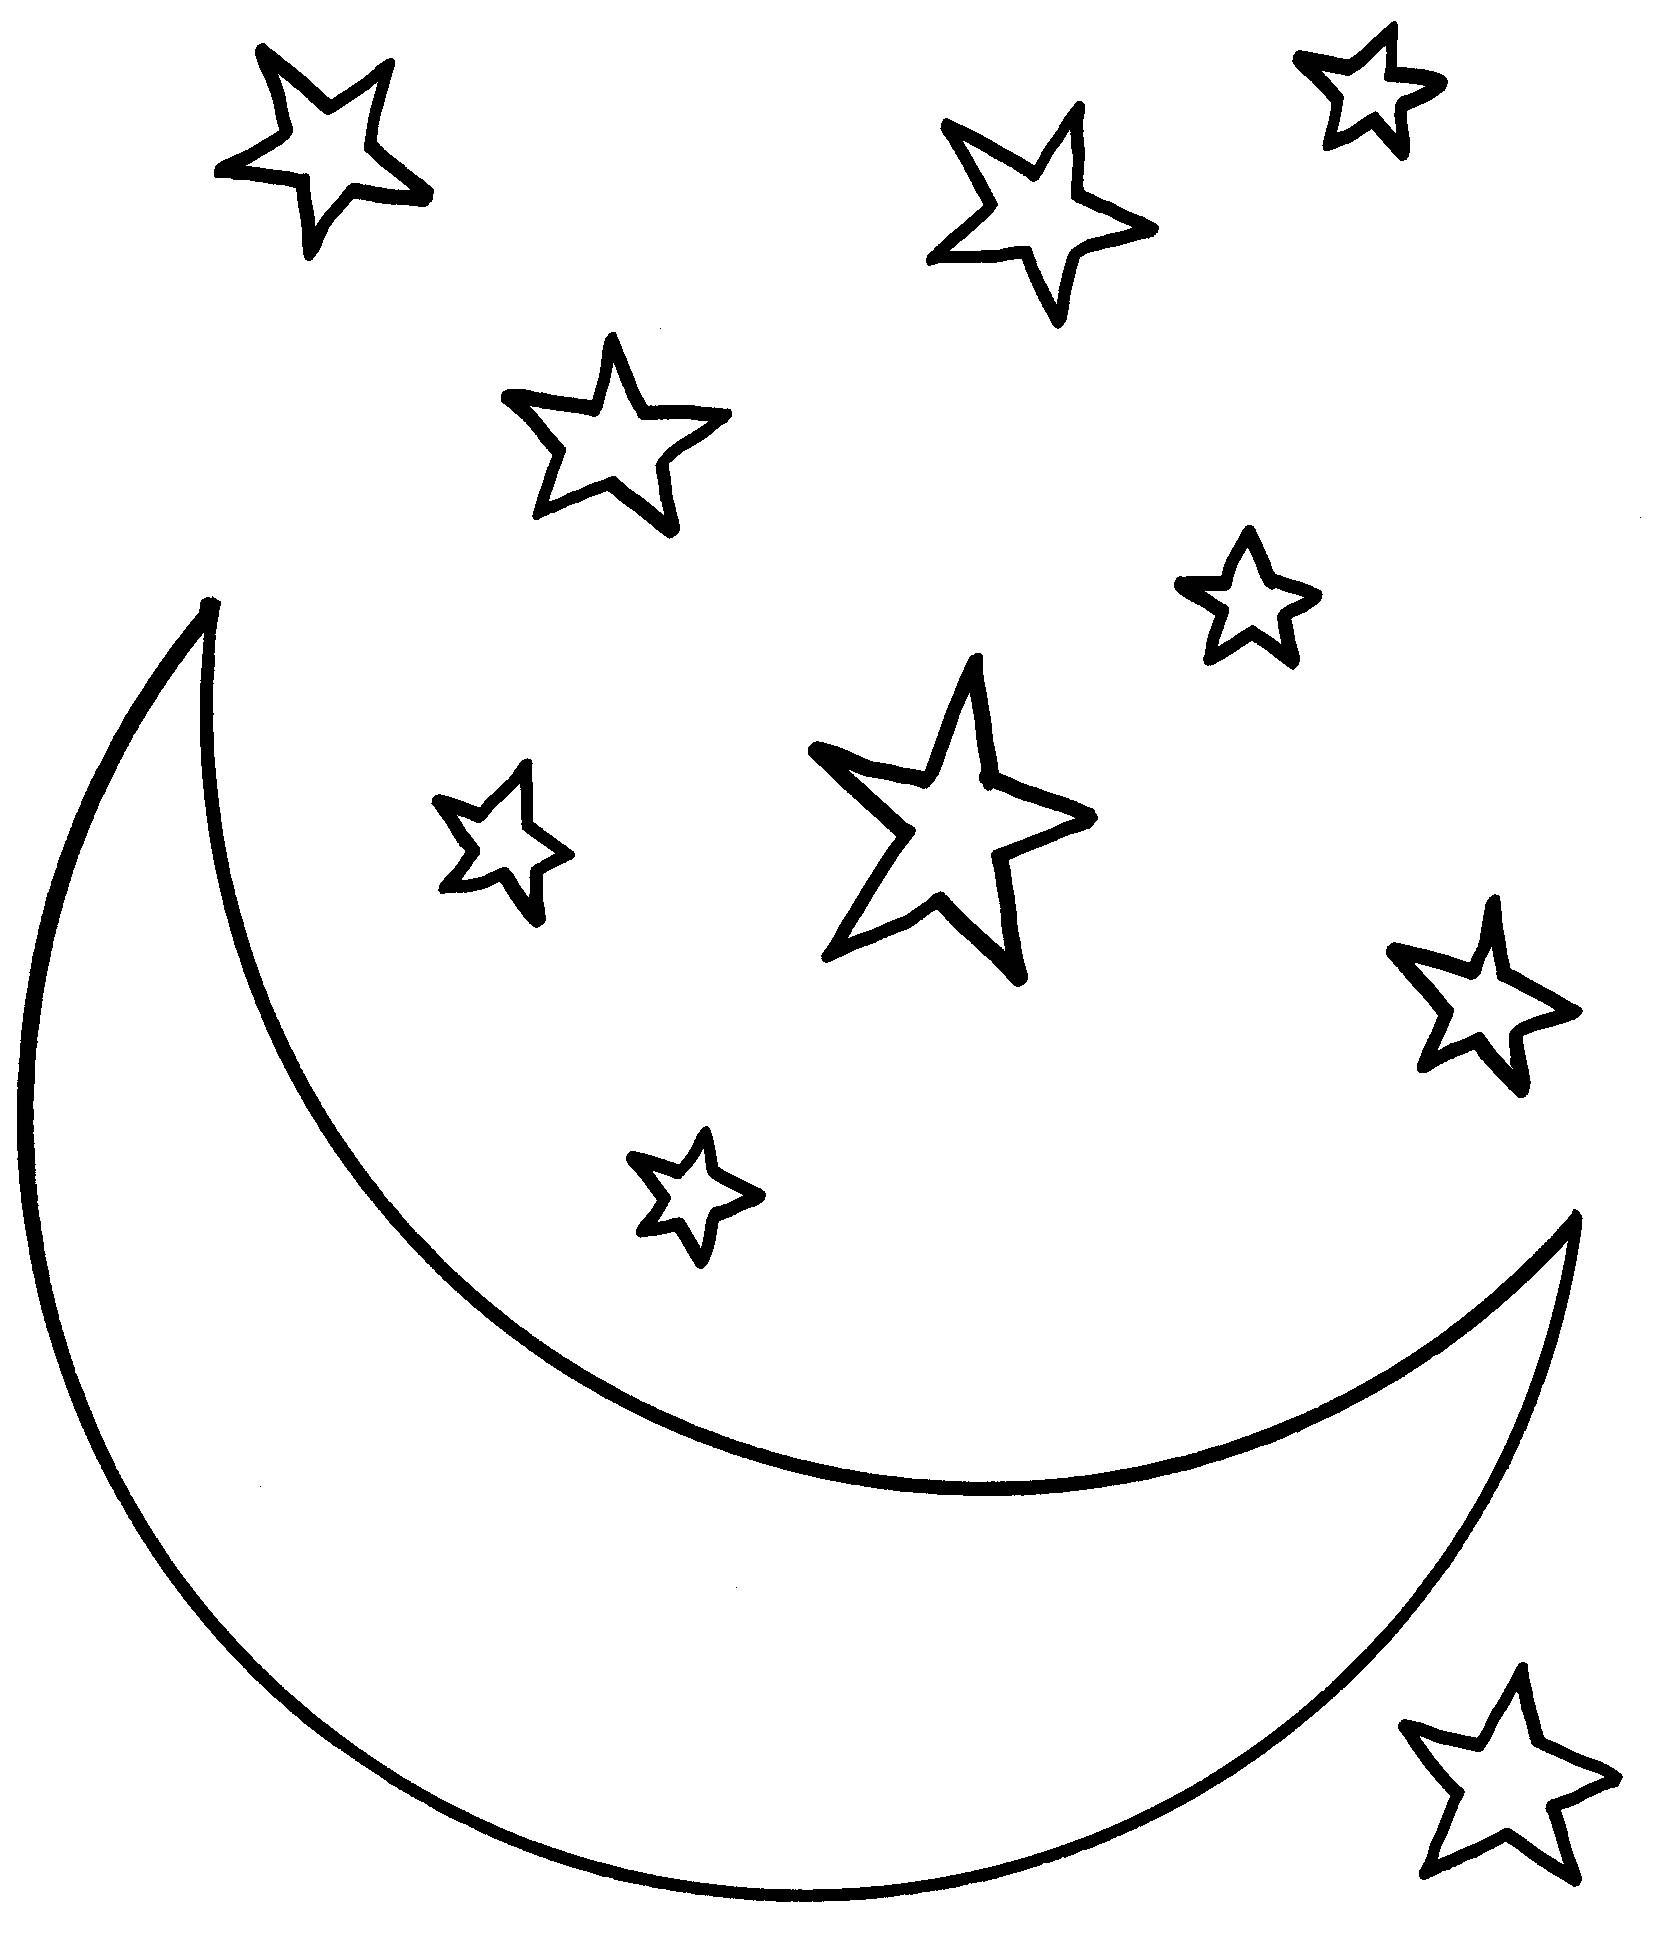 1654x1953 Unique Pictures Of Stars To Color Printable For Sweet Modest